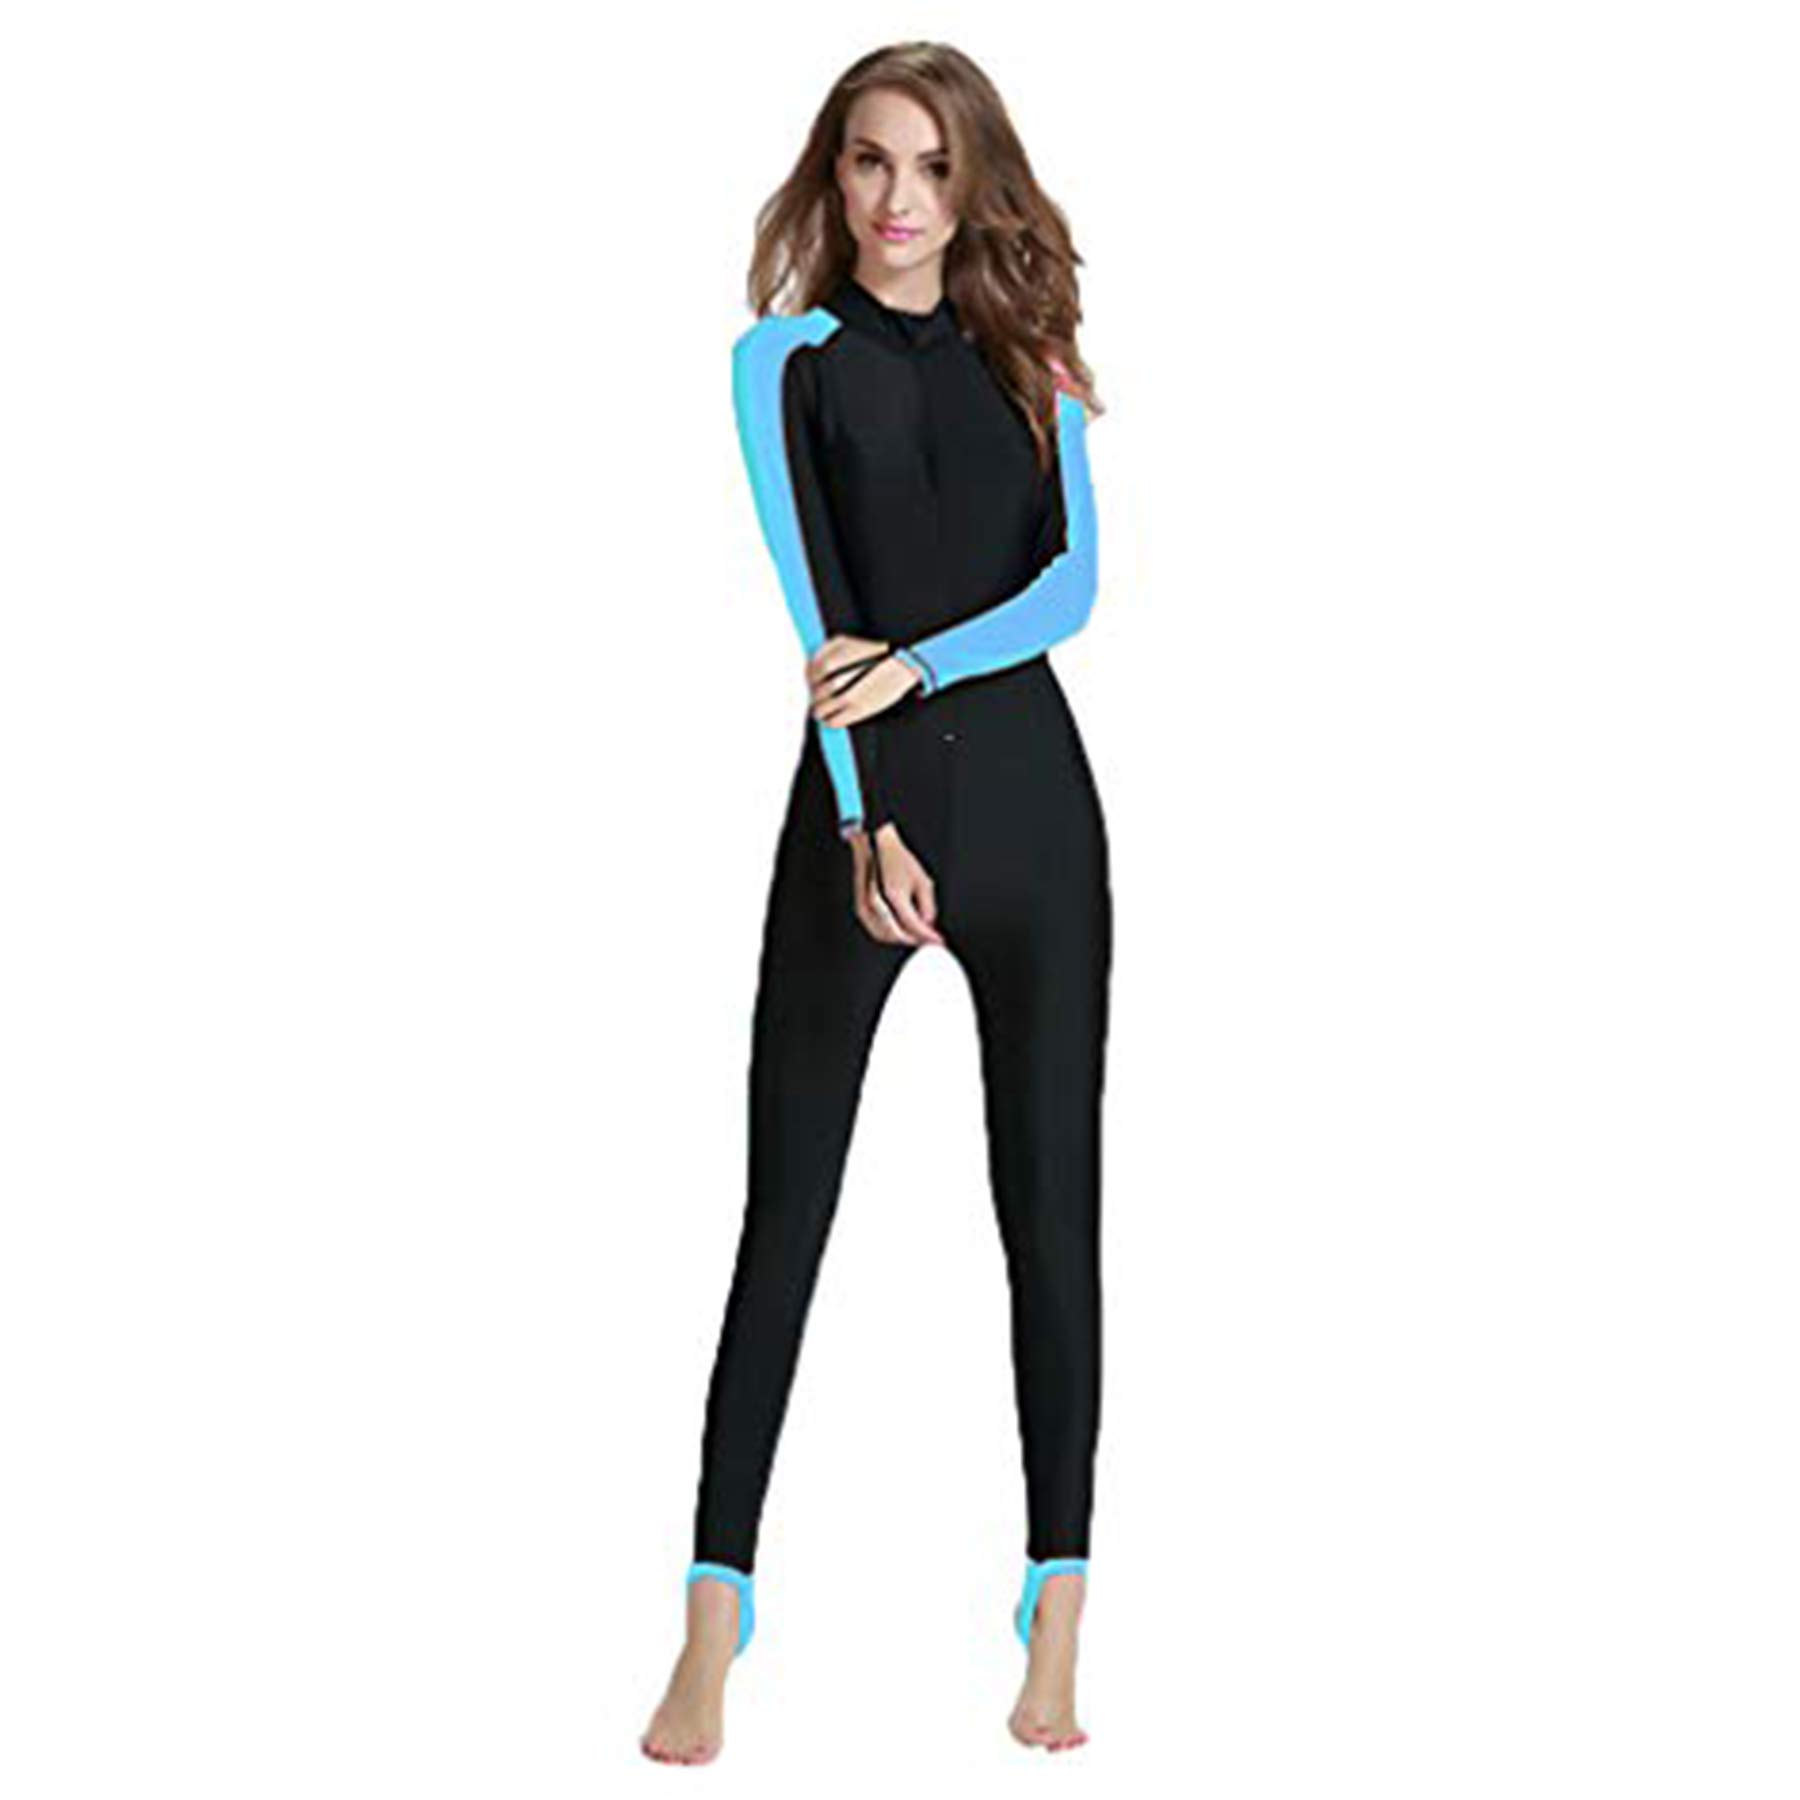 Excursion Sports Women One Piece Rash Guard, UV Protection Long Sleeves Full Body Thin Wetsuit, Dive Skin Bathing Suit for Swimming/Scuba Diving/Snorkeling/Surfing by Excursion Sports